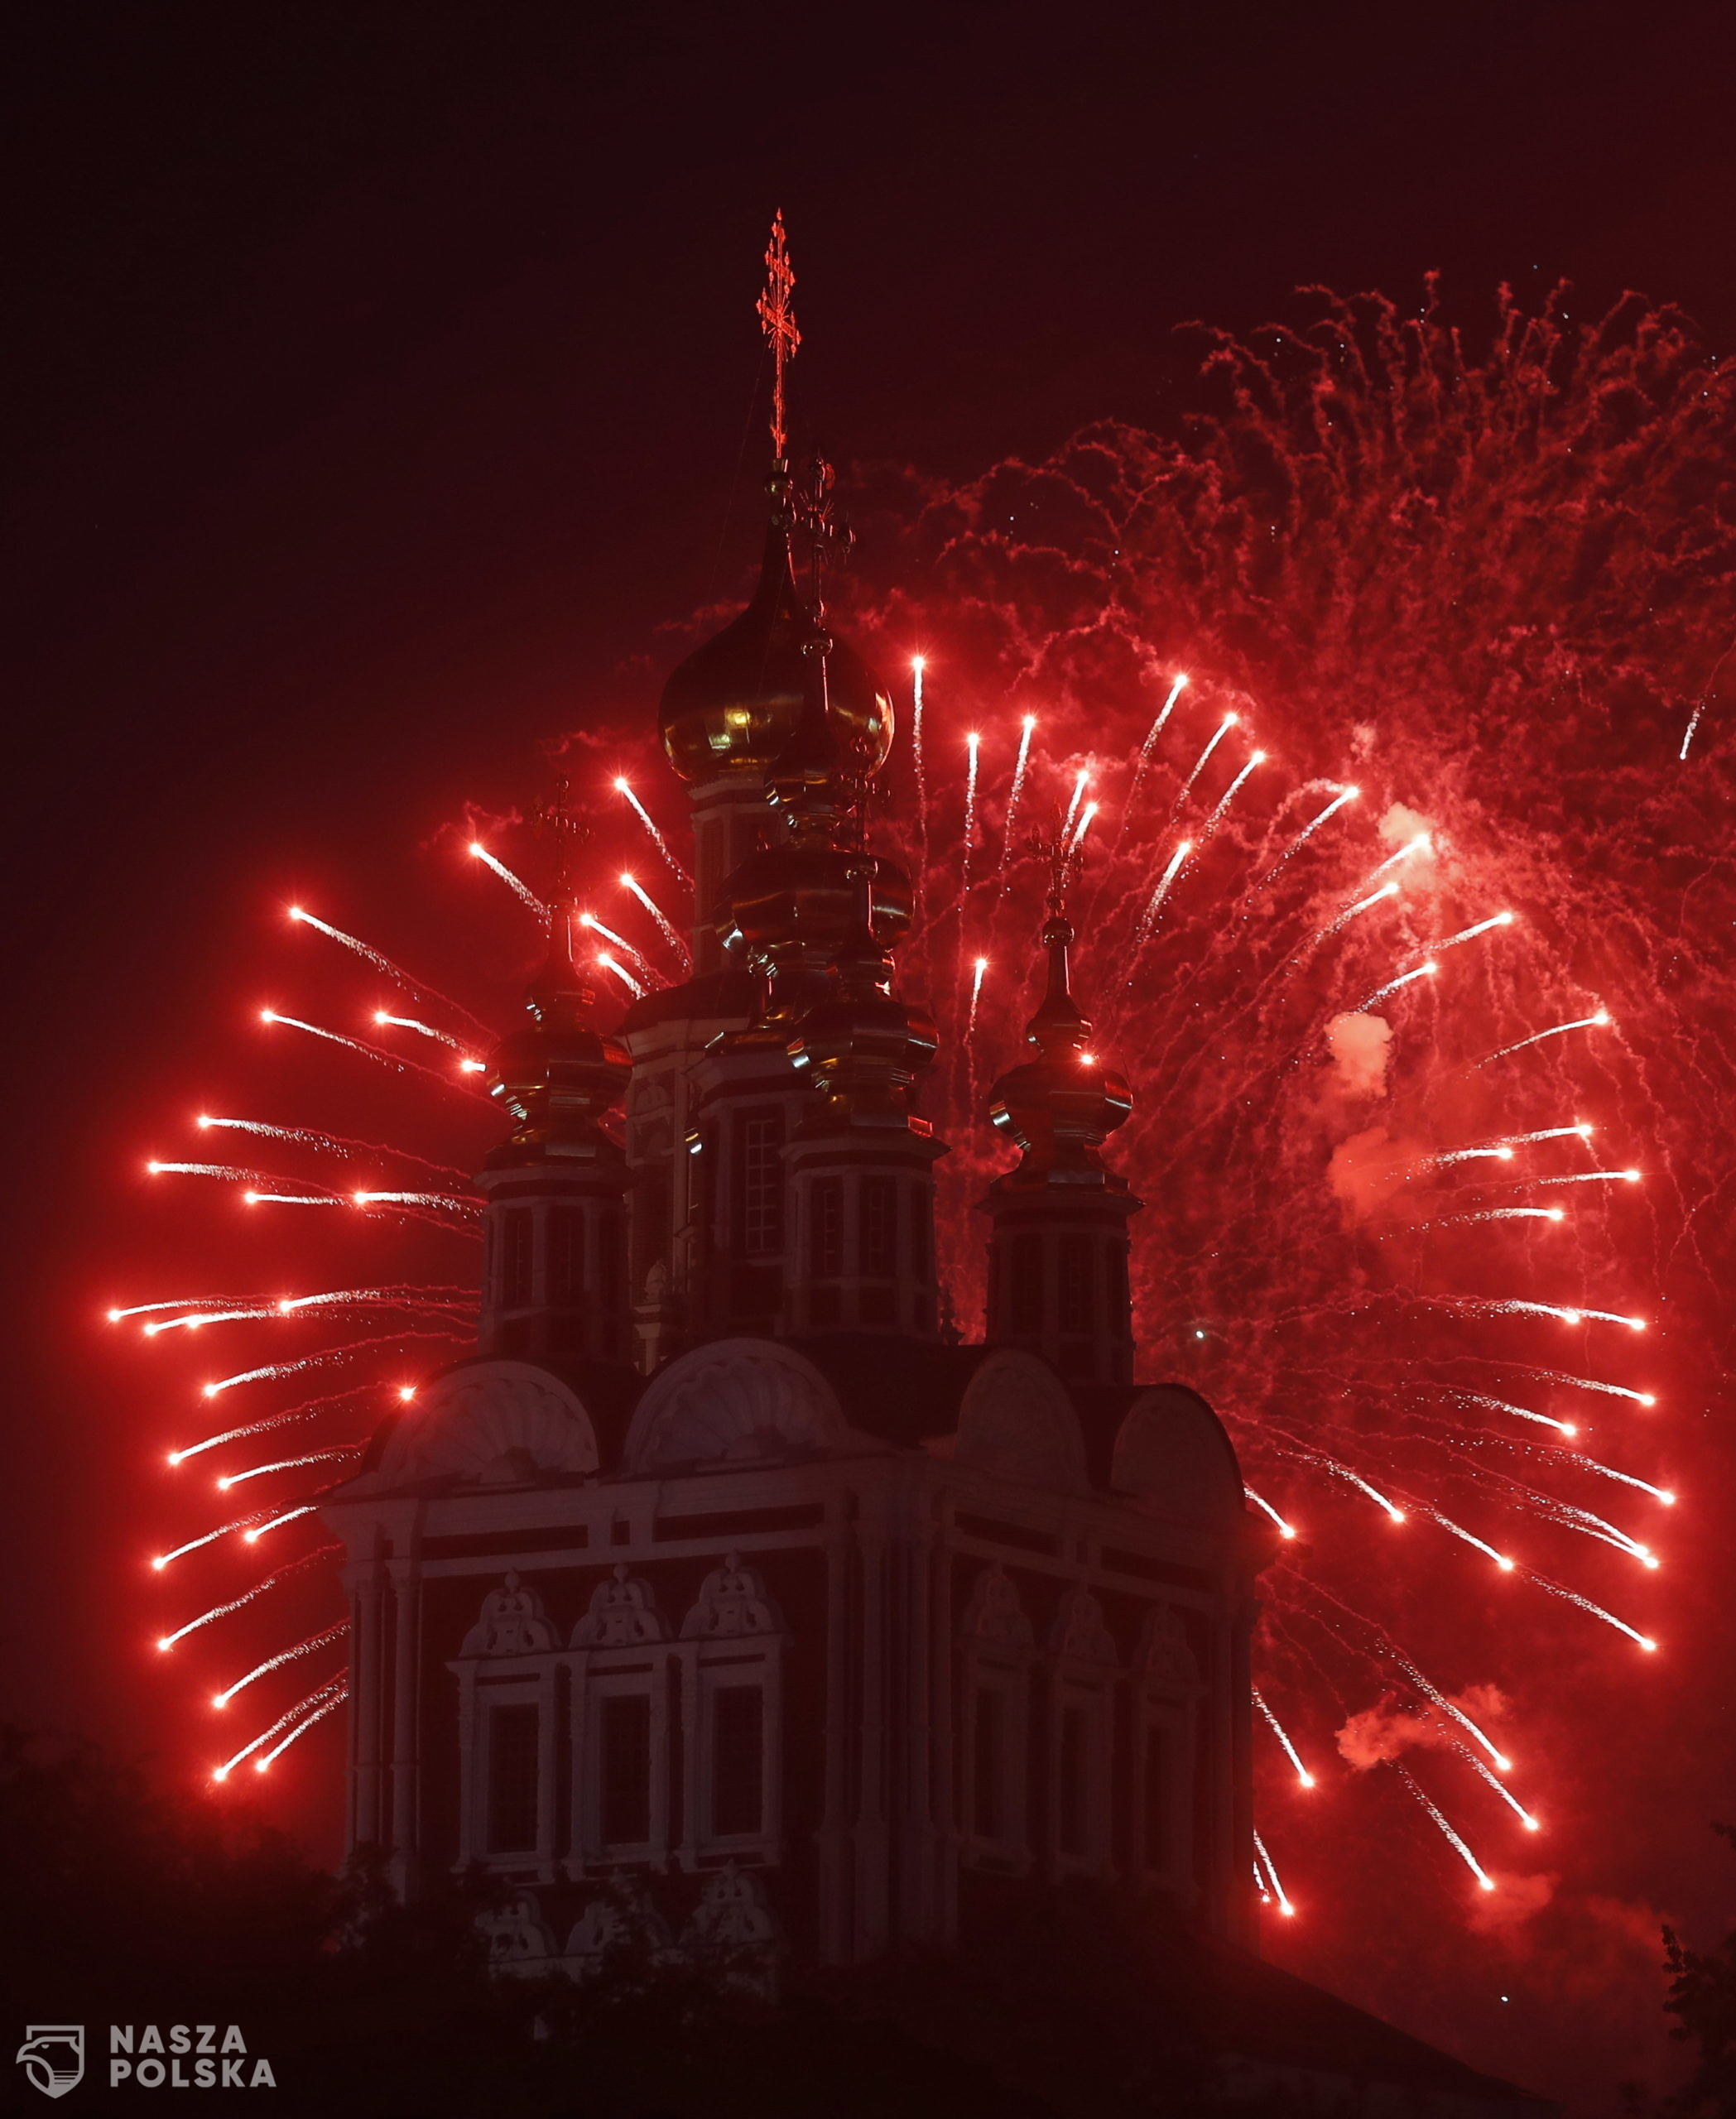 epa08507433 Fireworks over Novodevichiy monastery marking 75th anniversary of the victory in the World War II in Moscow, Russia, 24 June 2020. The main celebration  was postponed from 09 May to 24 June due to coronavirus epidemic in Moscow.  EPA/SERGEI CHIRIKOV  Dostawca: PAP/EPA.